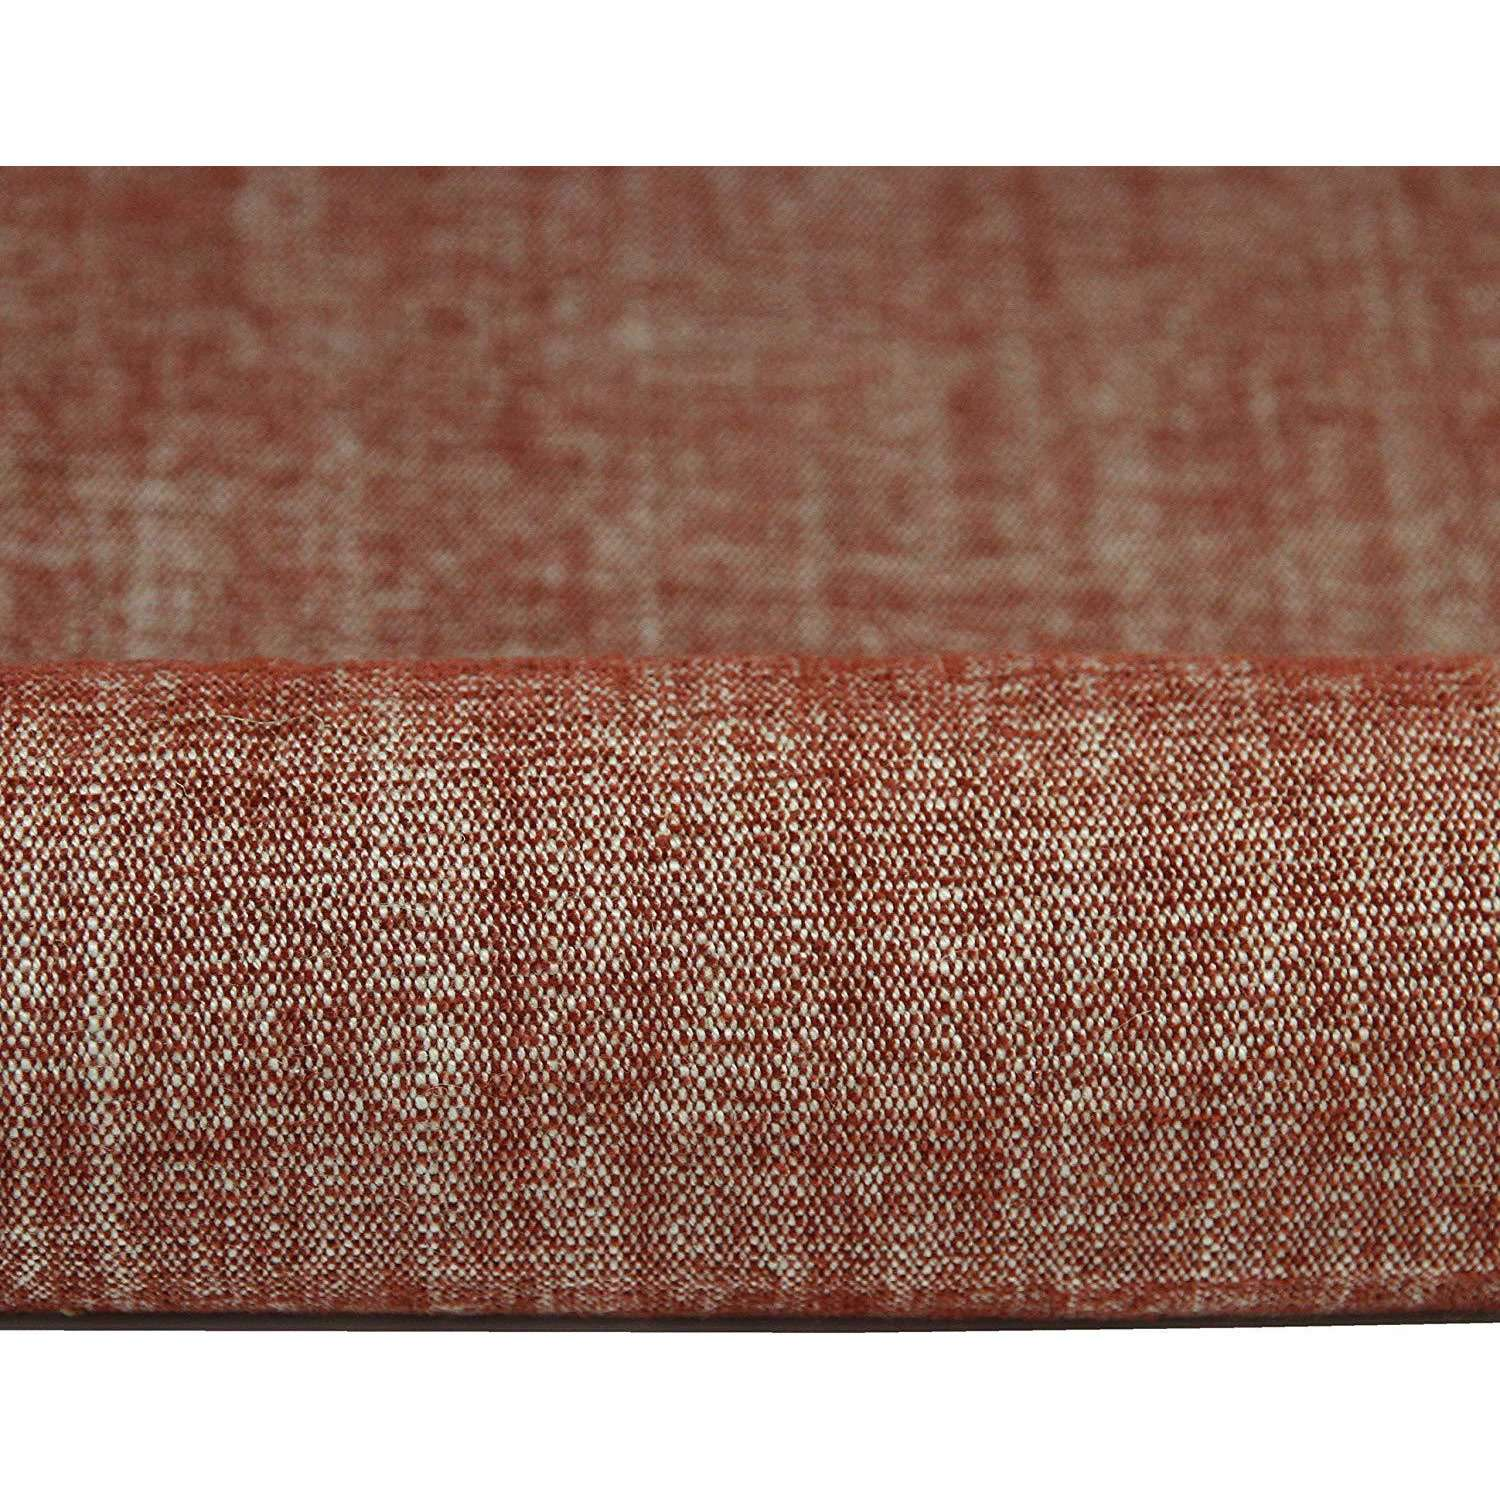 McAlister Textiles Rhumba Burnt Orange Roman Blind Roman Blinds